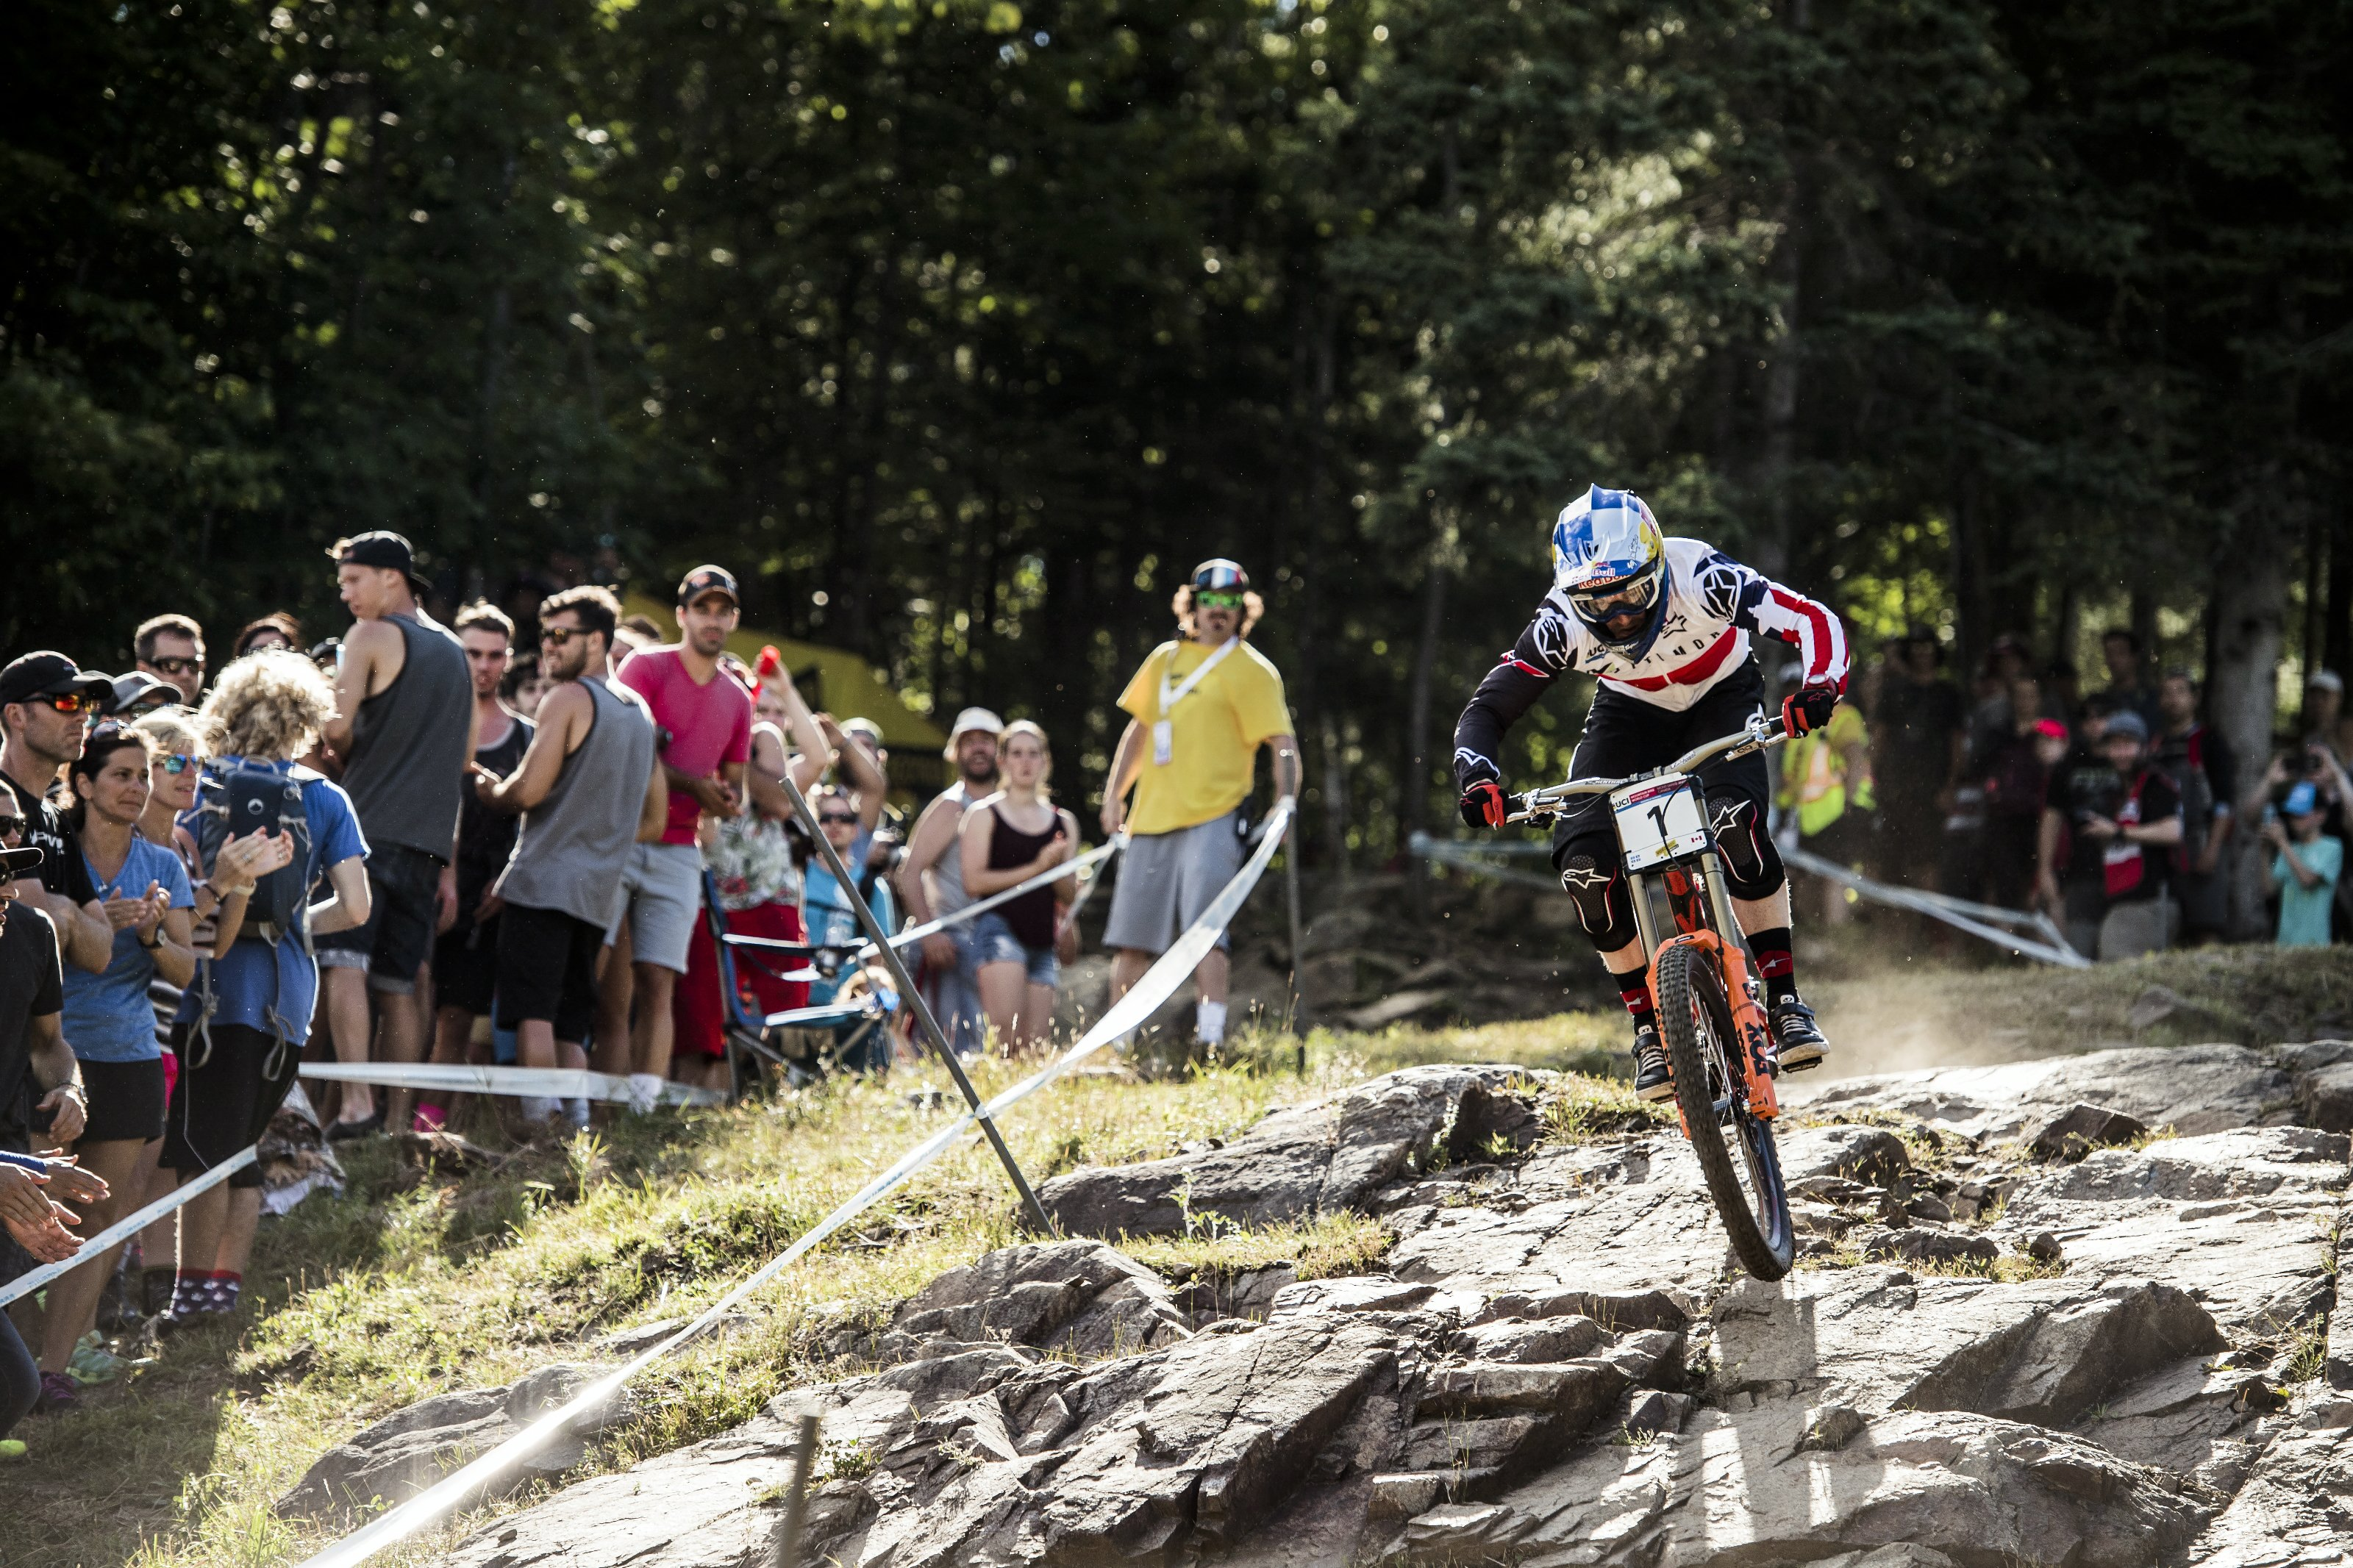 Mont-Sainte-Anne16_Aaron Gwin_Action_(c)Bartek Wolinski_Red Bull Content Pool